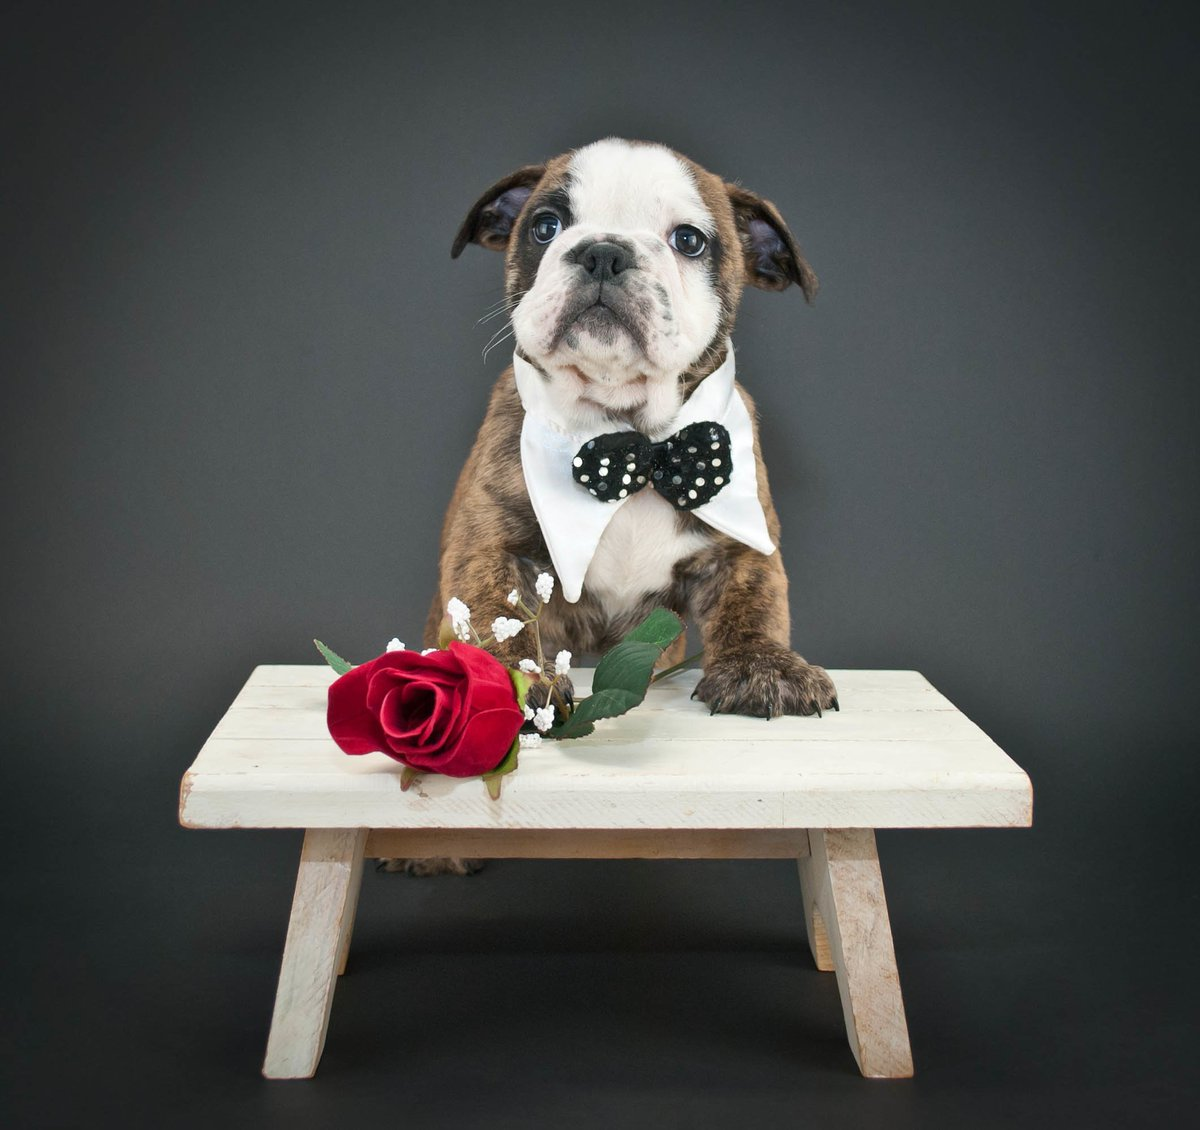 FACES MAGAZINE'S $6,000 VALENTINE'S DAY CONTEST Presented by the 7th Annual Casino Royale on June 14th  Like and retweet for your chance to win 🌹🎁  @BrookstreetOtt @holtzspa @northandnavy @ottawaflowers @RoostersMens @ExperienceFood1 @MountPakenham